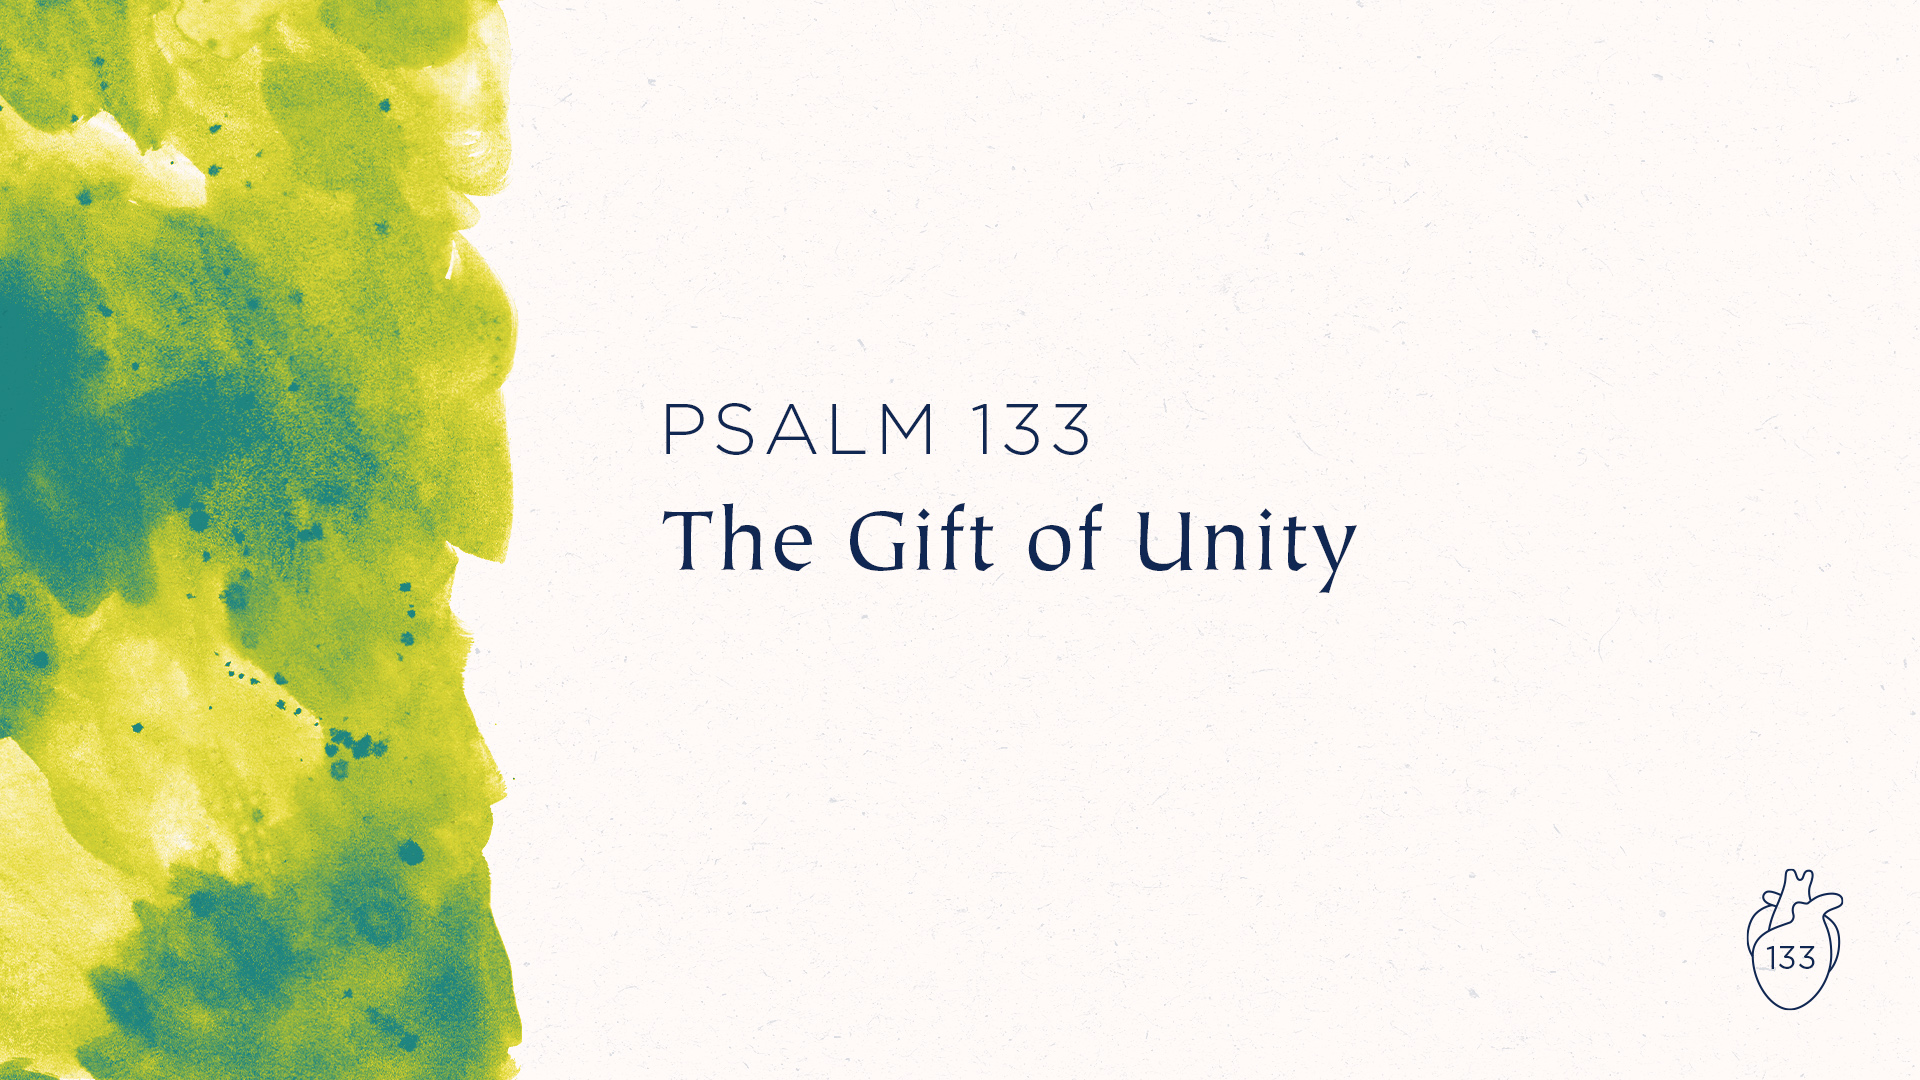 The Gift of Unity